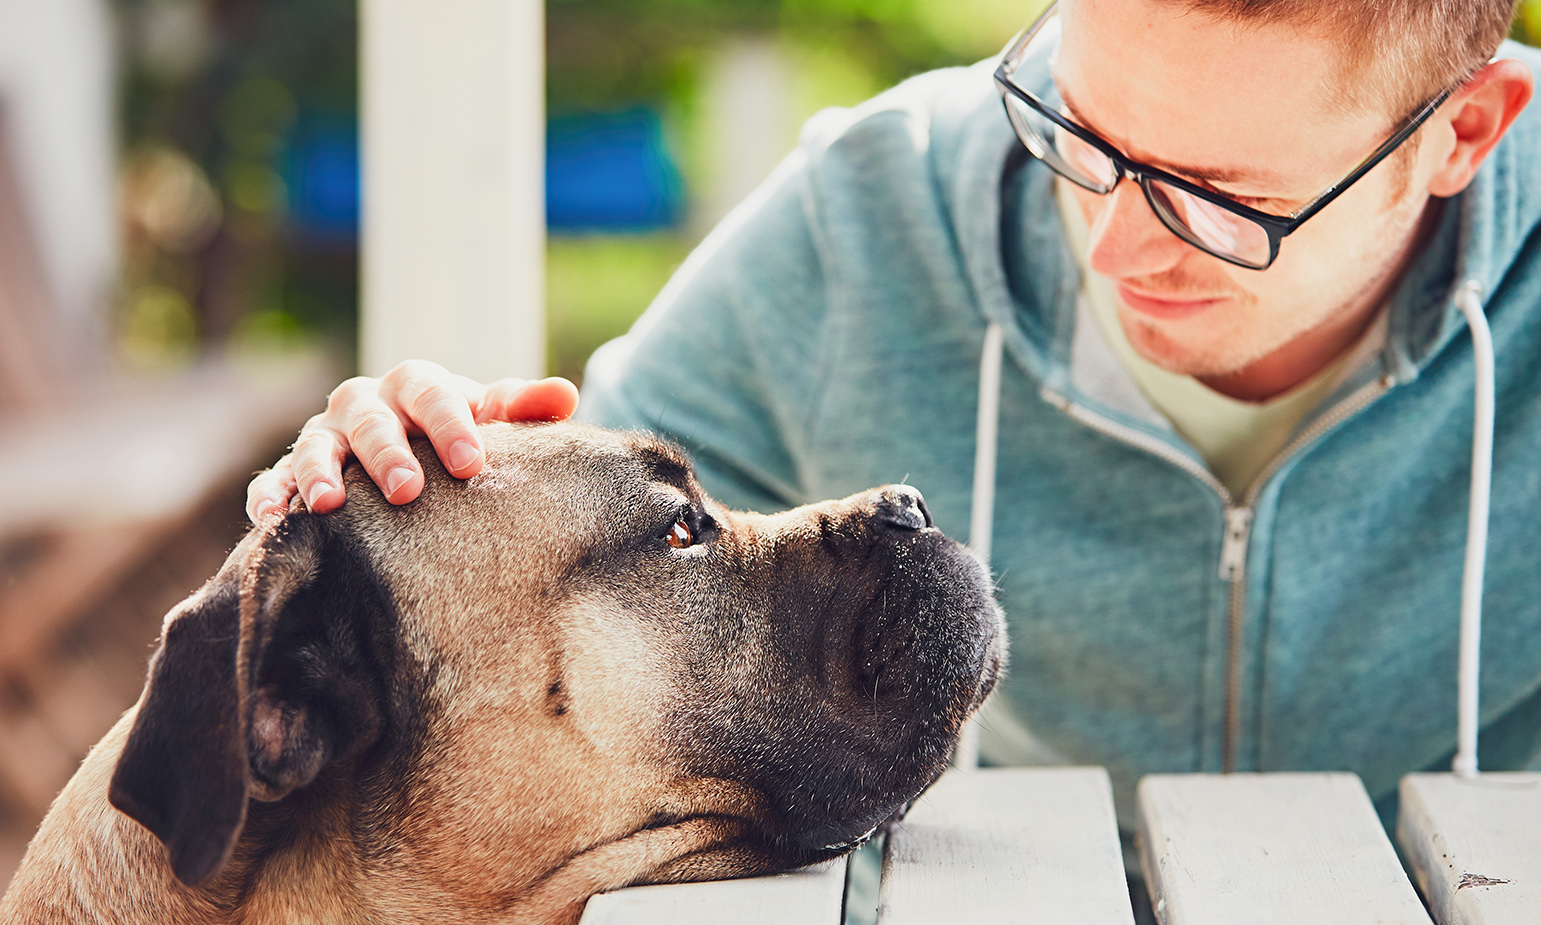 Coping with Losing a Pet - HelpGuide.org